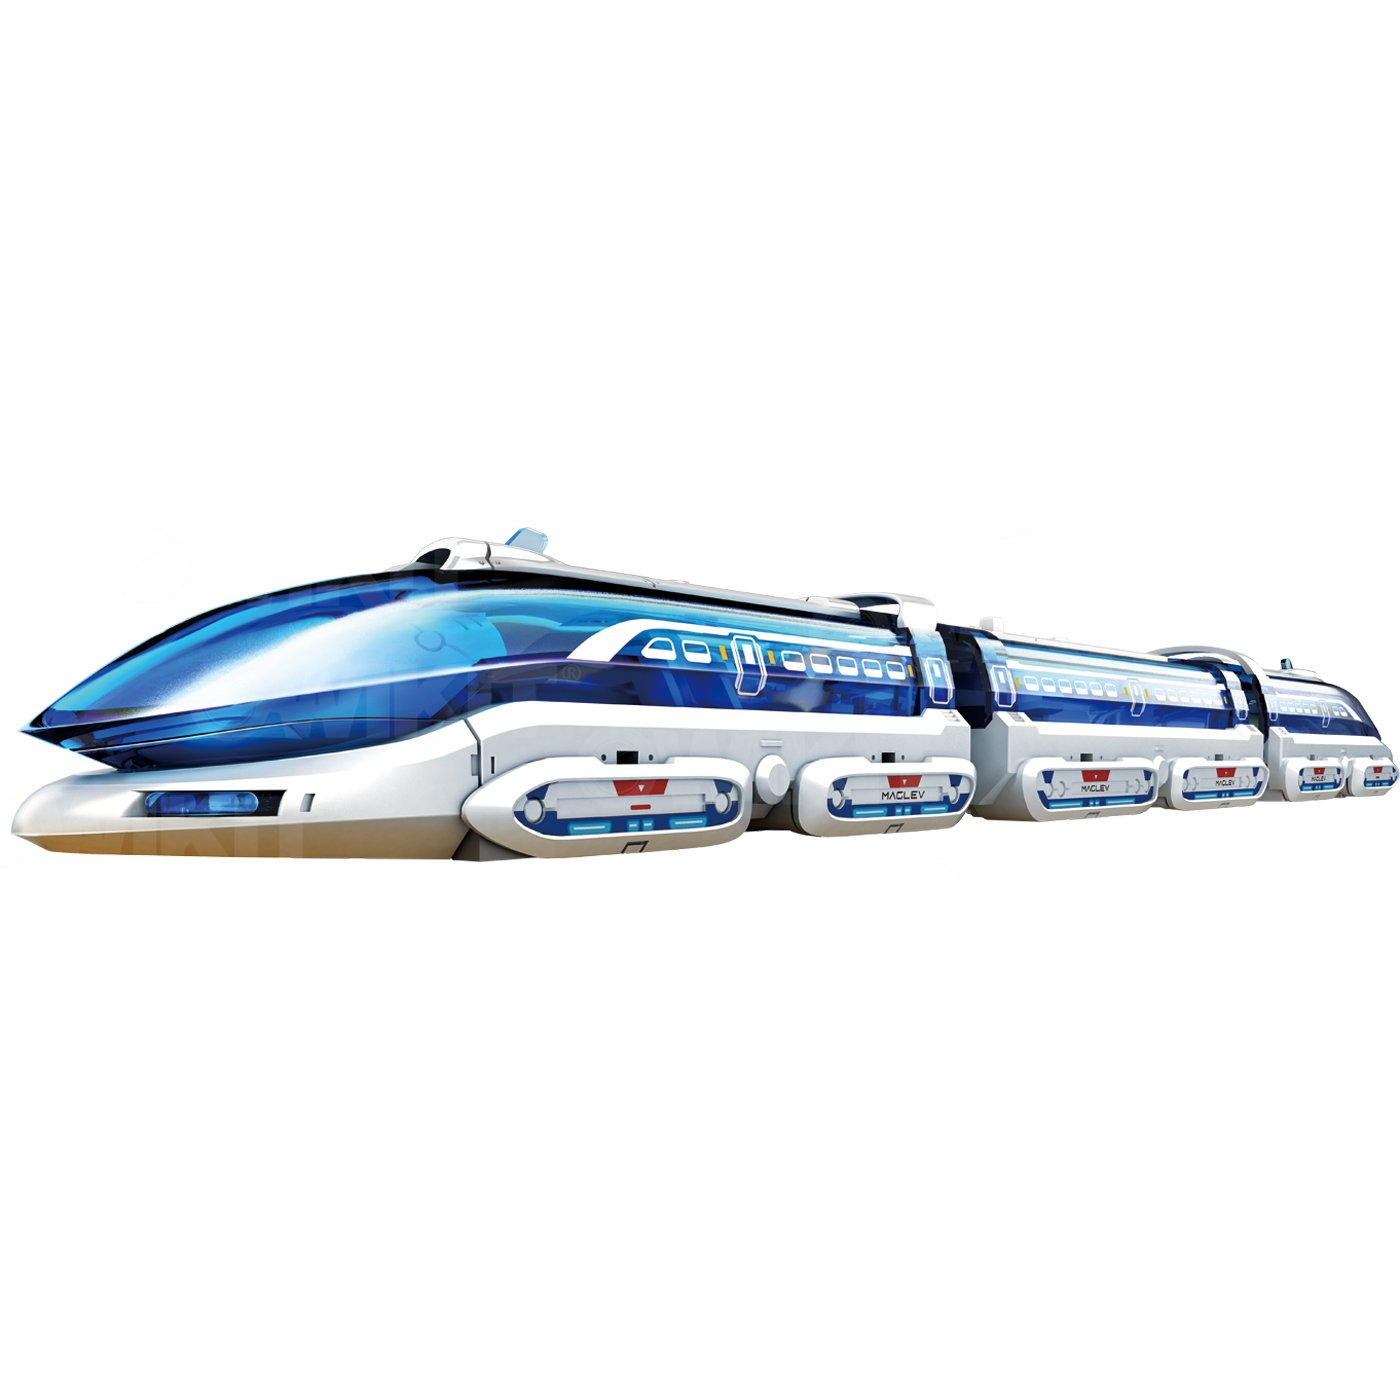 OWI Magnetic Levitation Express Mag-Lev Train by OWI (Image #4)